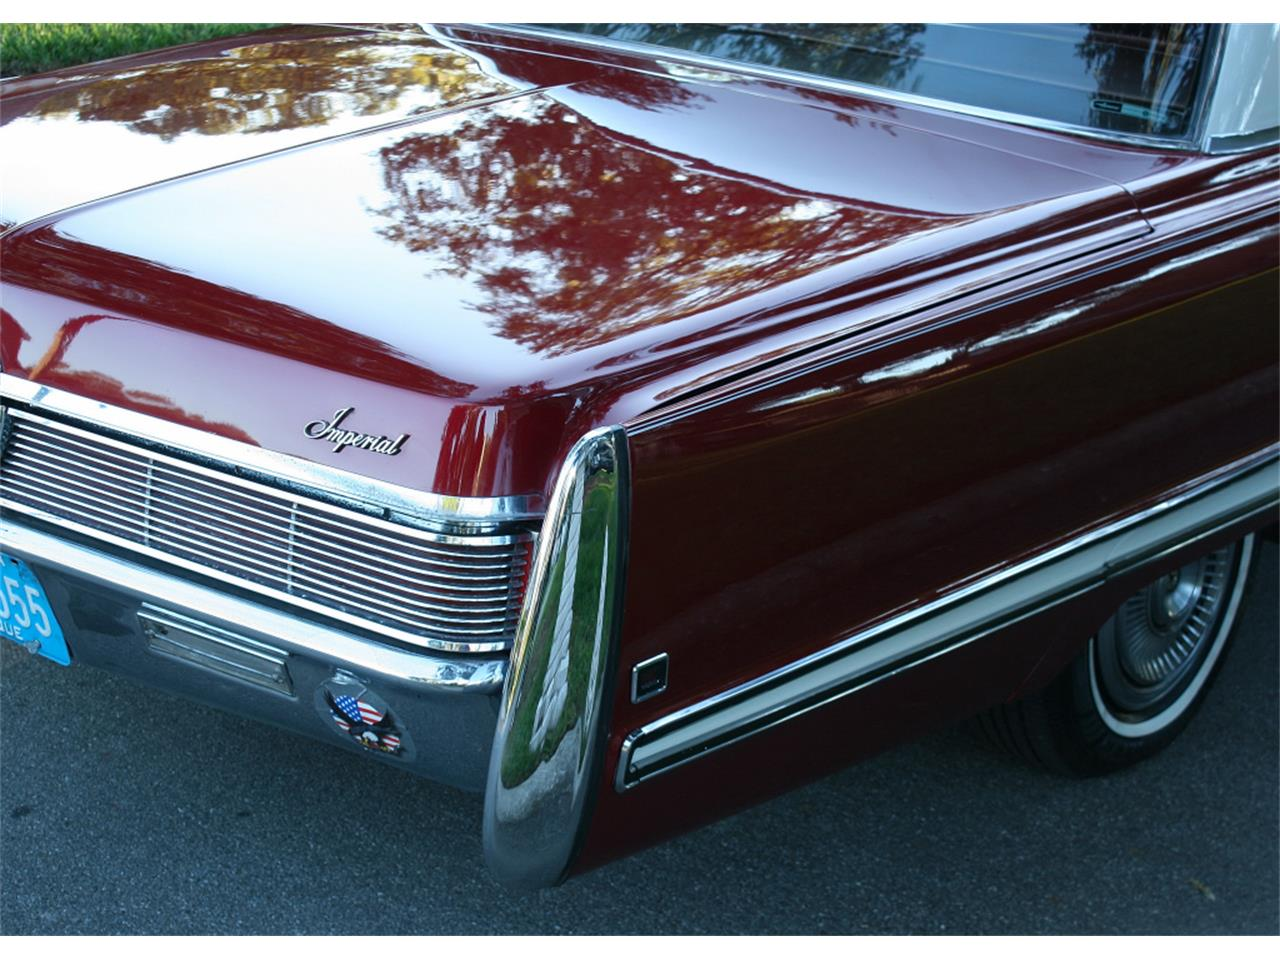 1968 Chrysler Imperial for sale in Lakeland, FL – photo 29